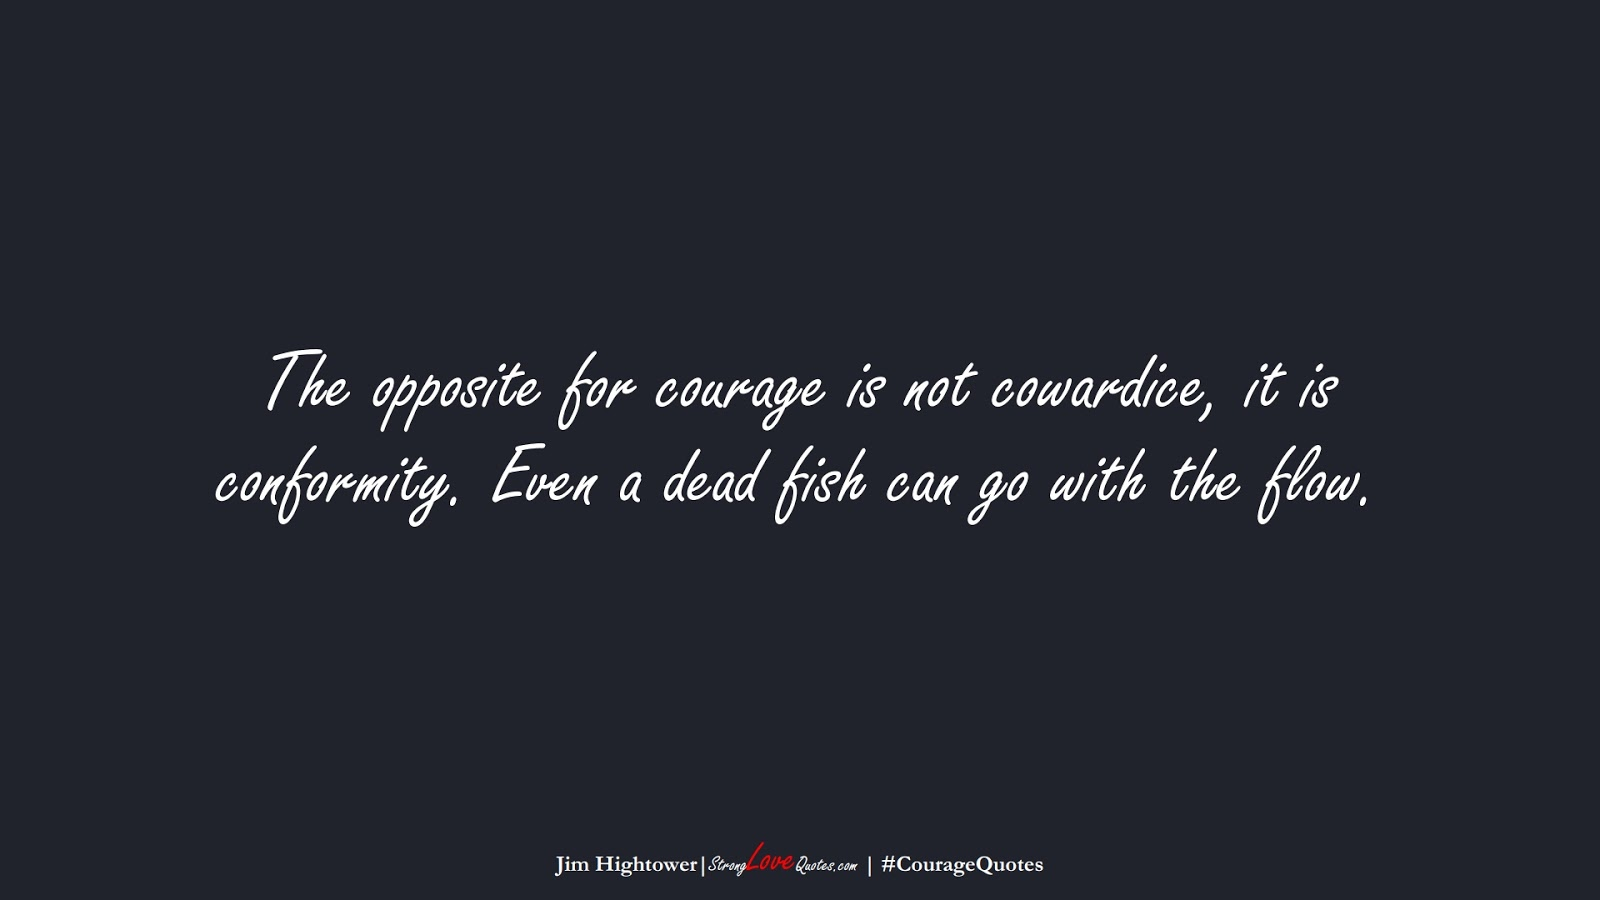 The opposite for courage is not cowardice, it is conformity. Even a dead fish can go with the flow. (Jim Hightower);  #CourageQuotes